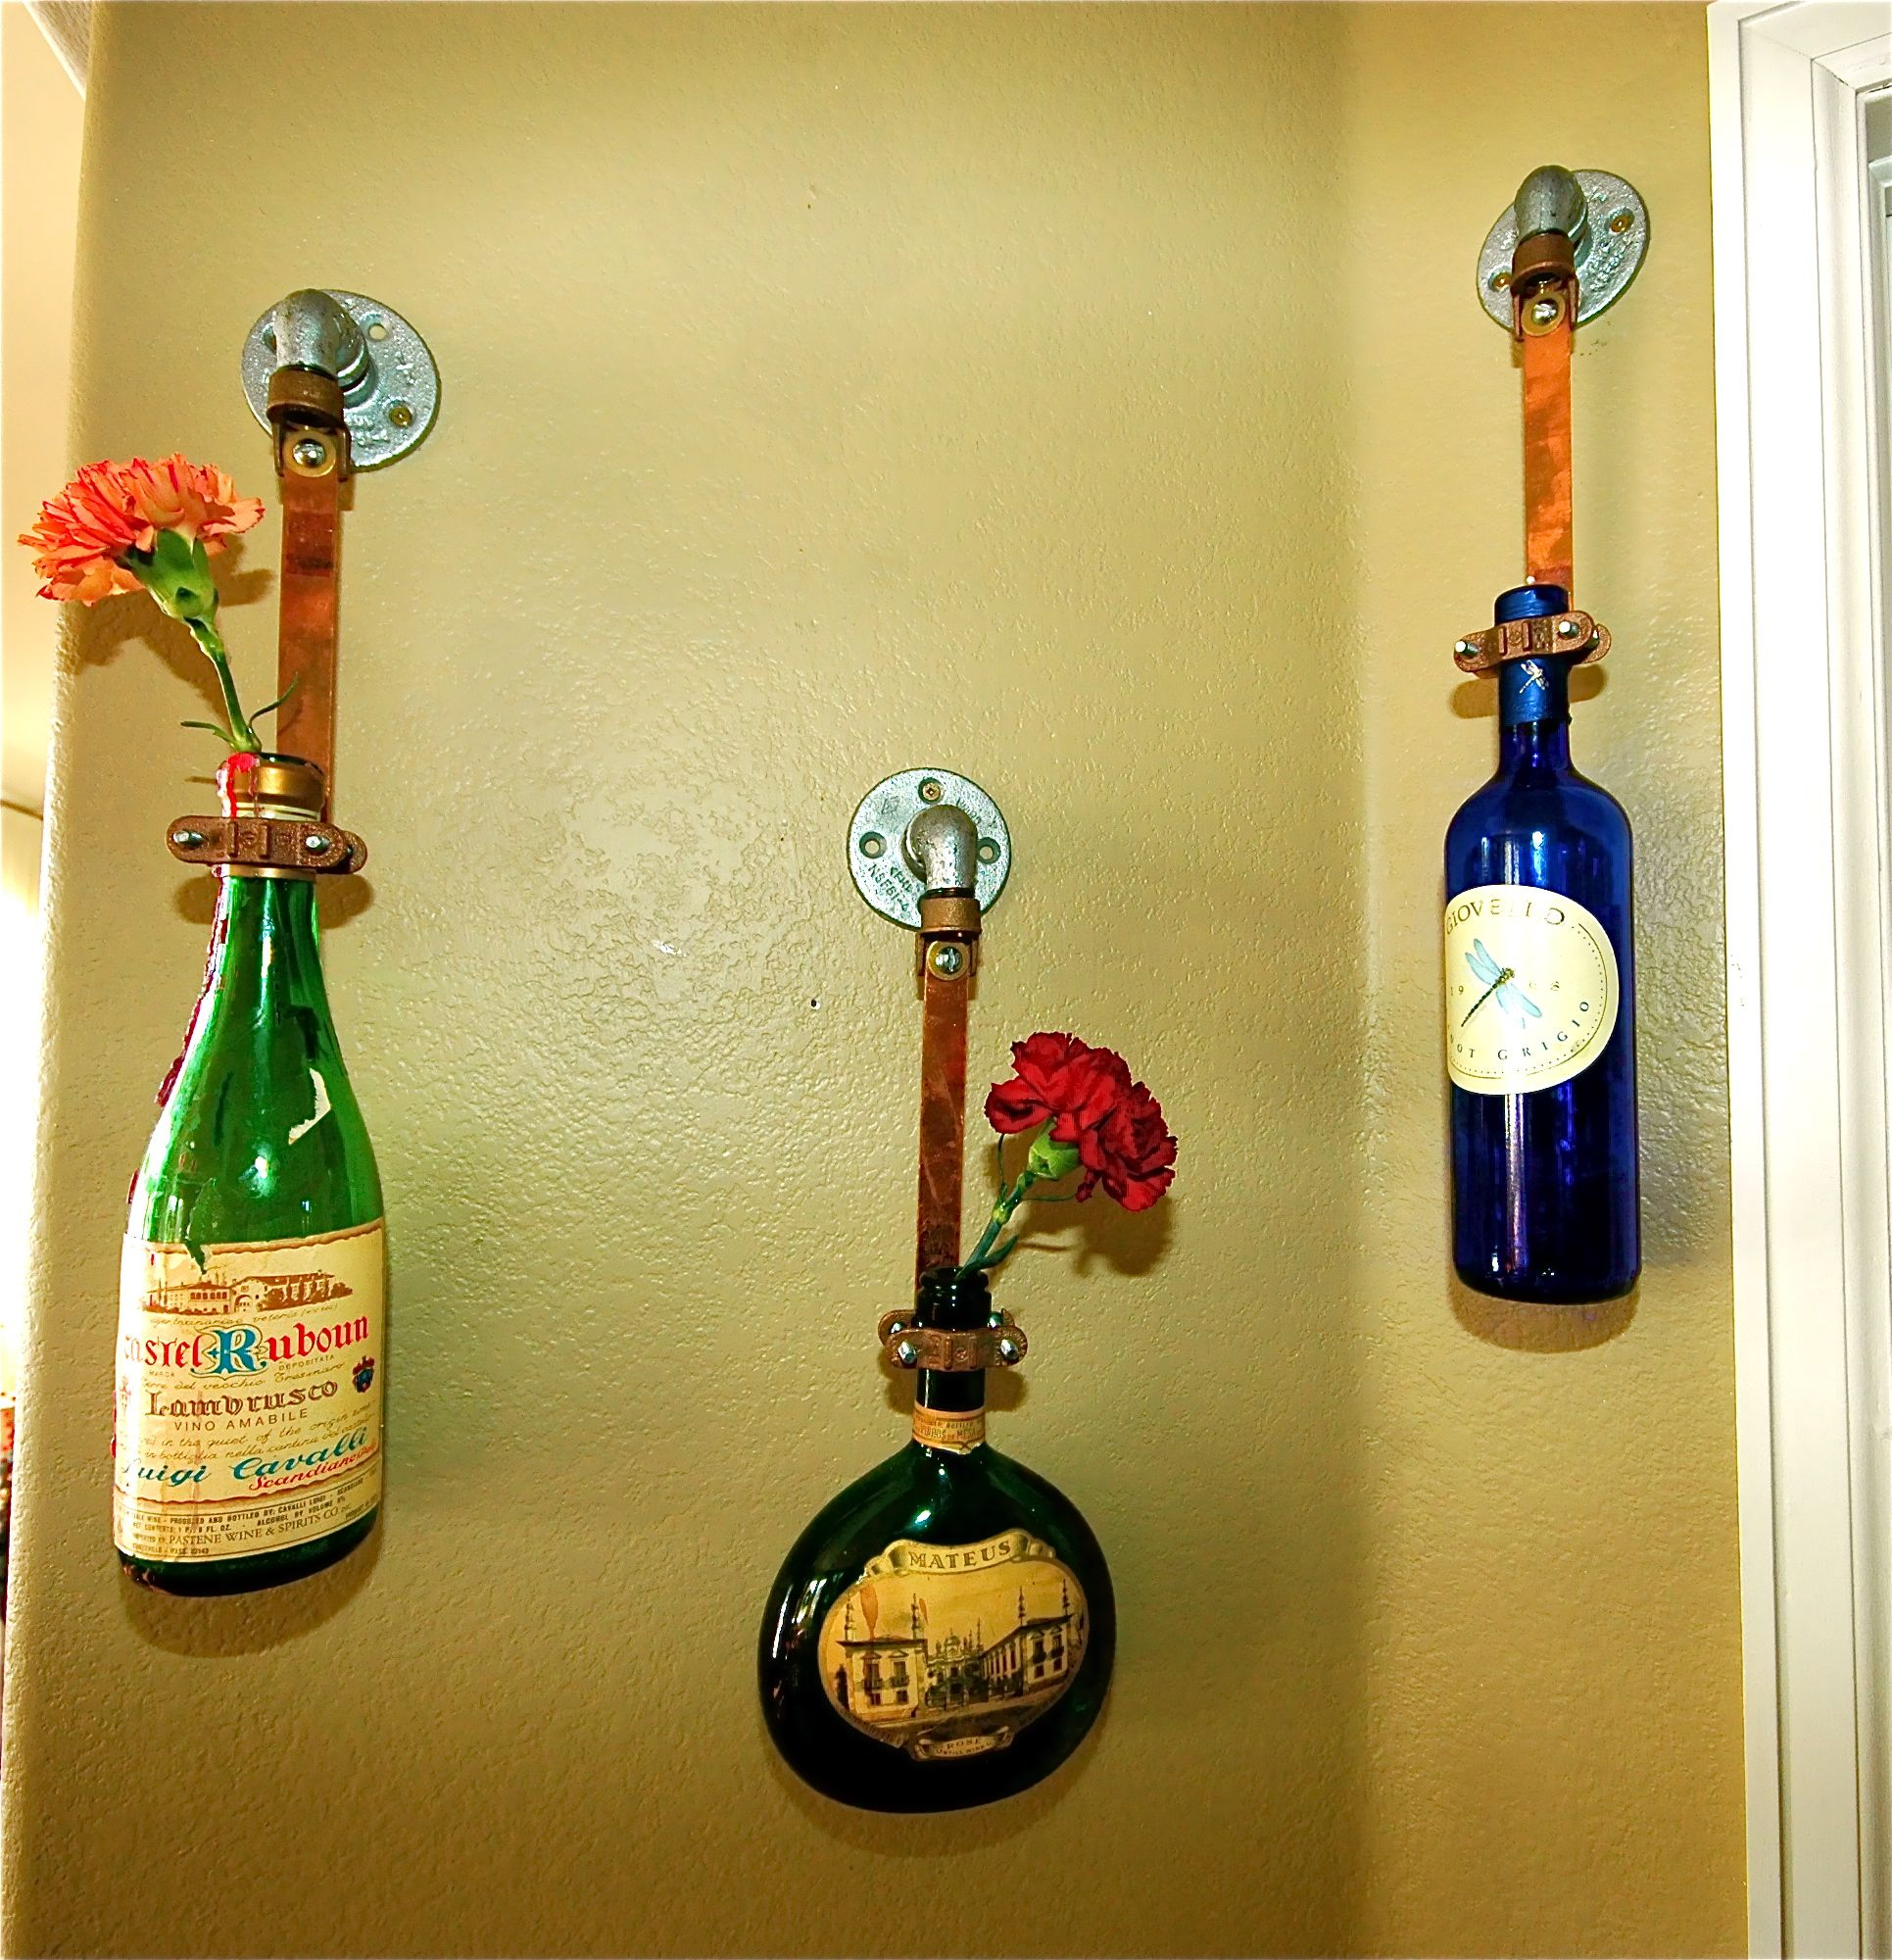 The plumbing isle + fabulous liquor/wine bottles = wall art ...